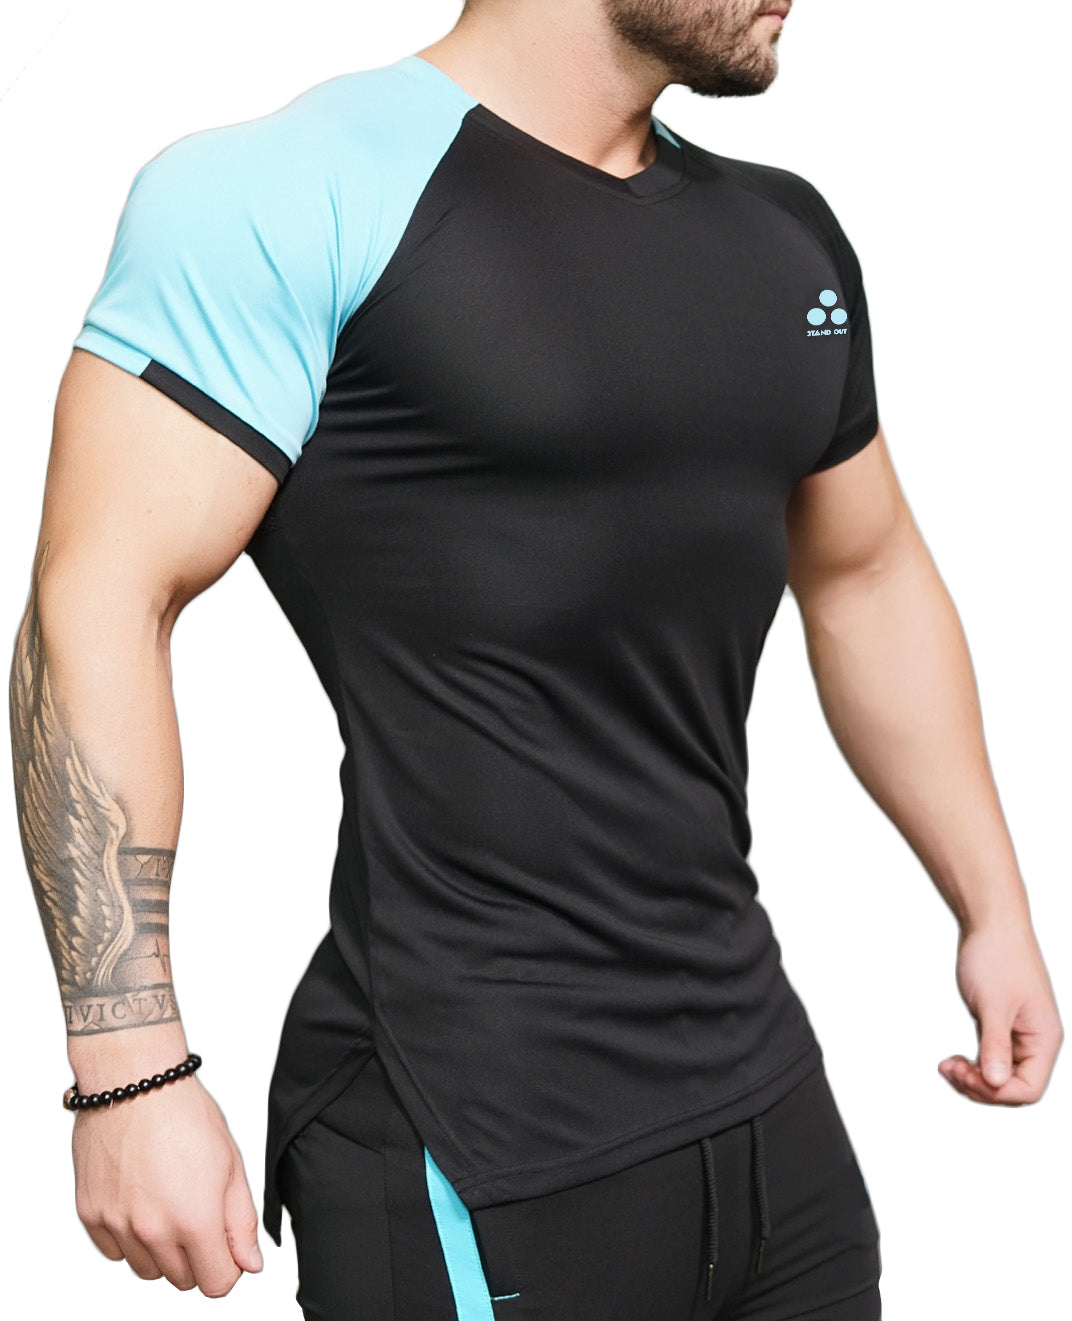 STAND OUT - Mesh back | Athleisure | Performance wear | Gym T-Shirt